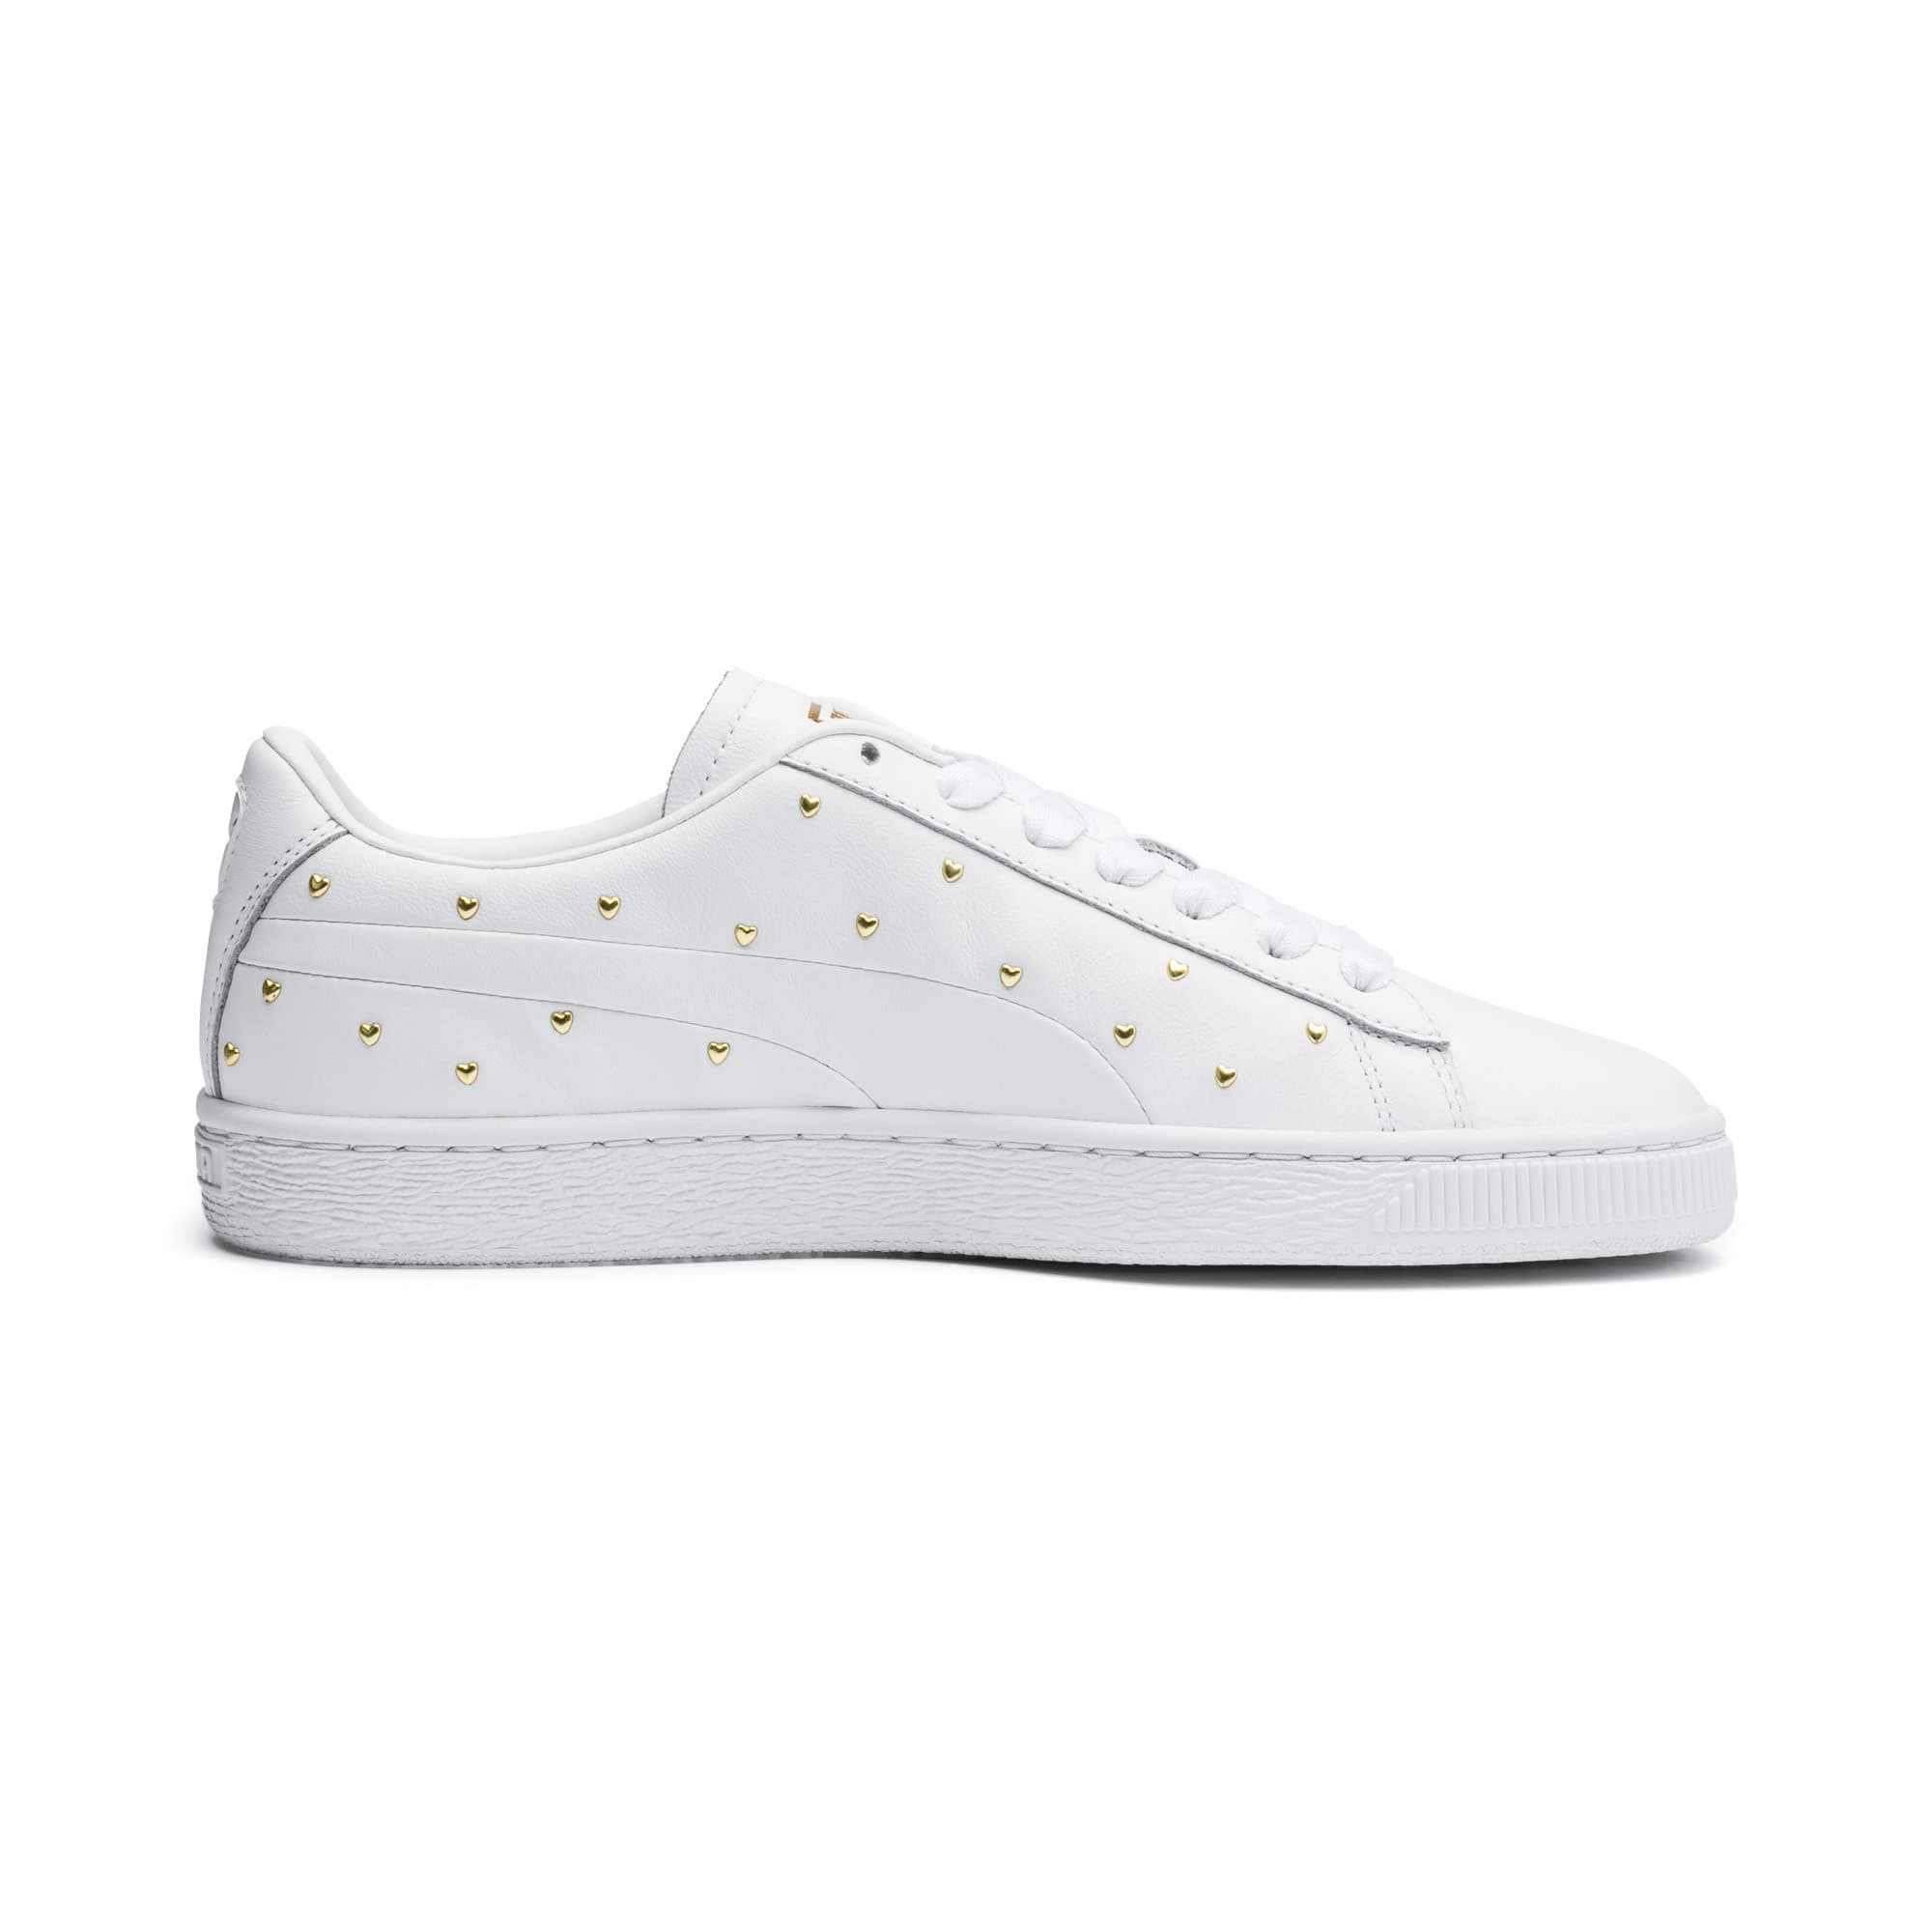 Thumbnail 6 of Basket Studs Women's Trainers, Puma White-Puma Team Gold, medium